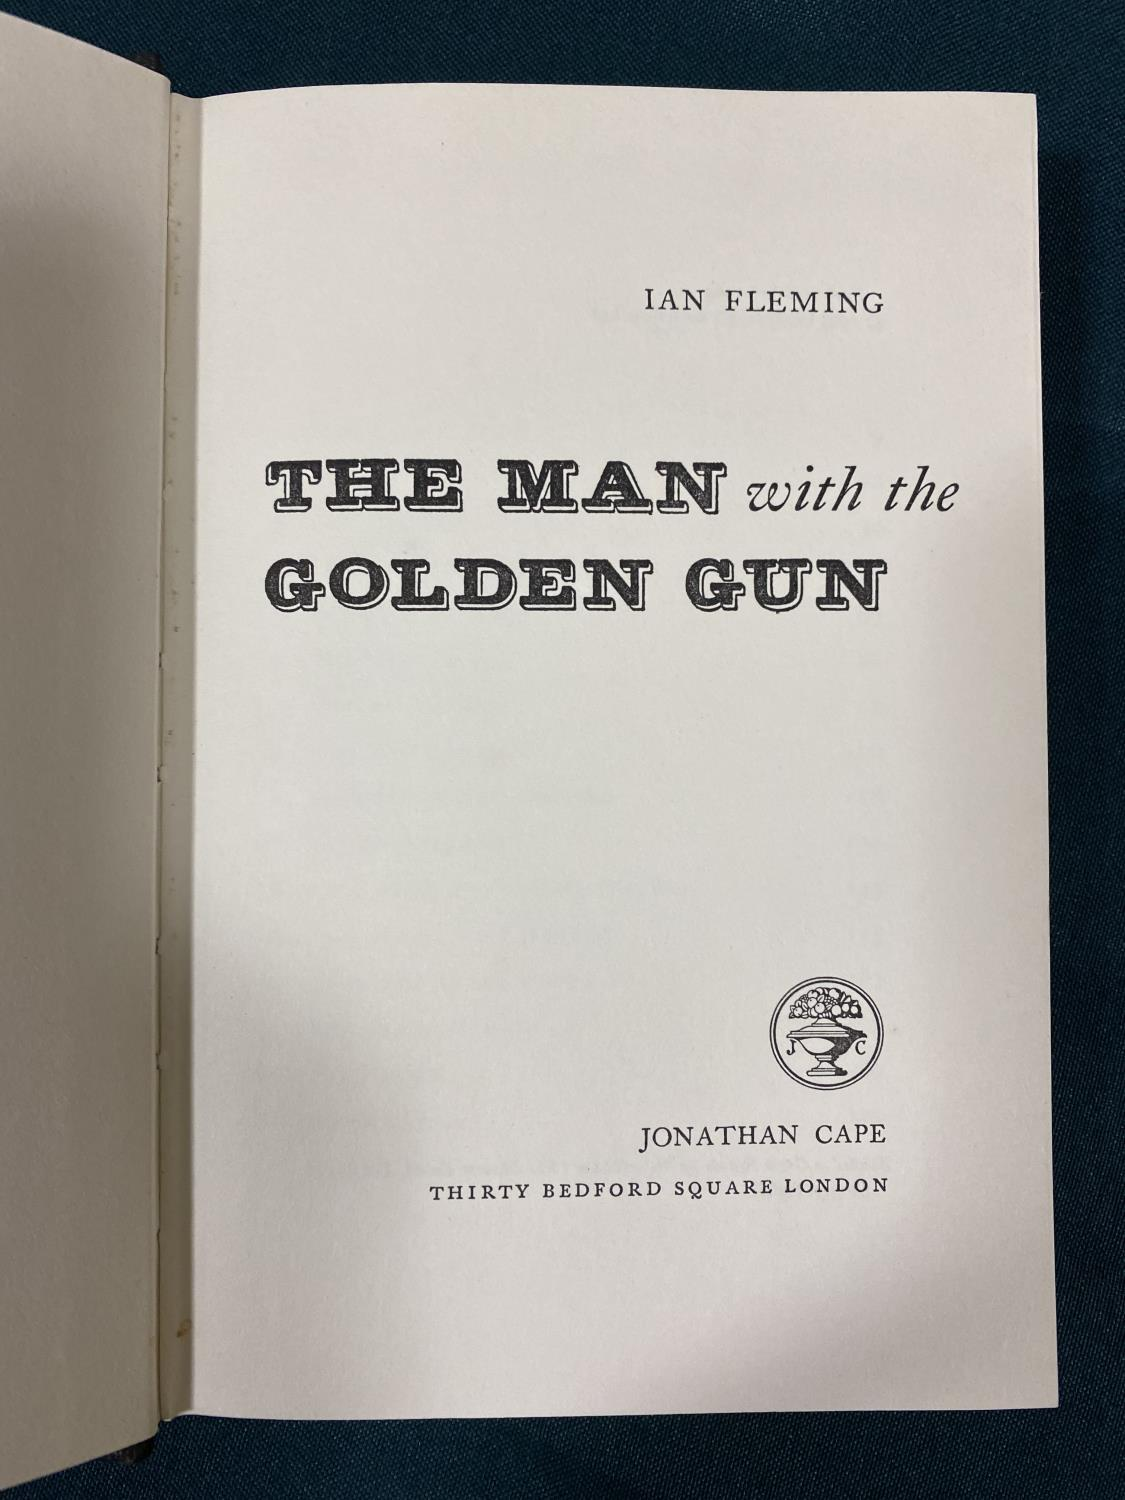 Fleming, Ian. The Man with the Golden Gun, first edition, half-title, original cloth, dust-jacket, - Image 2 of 5